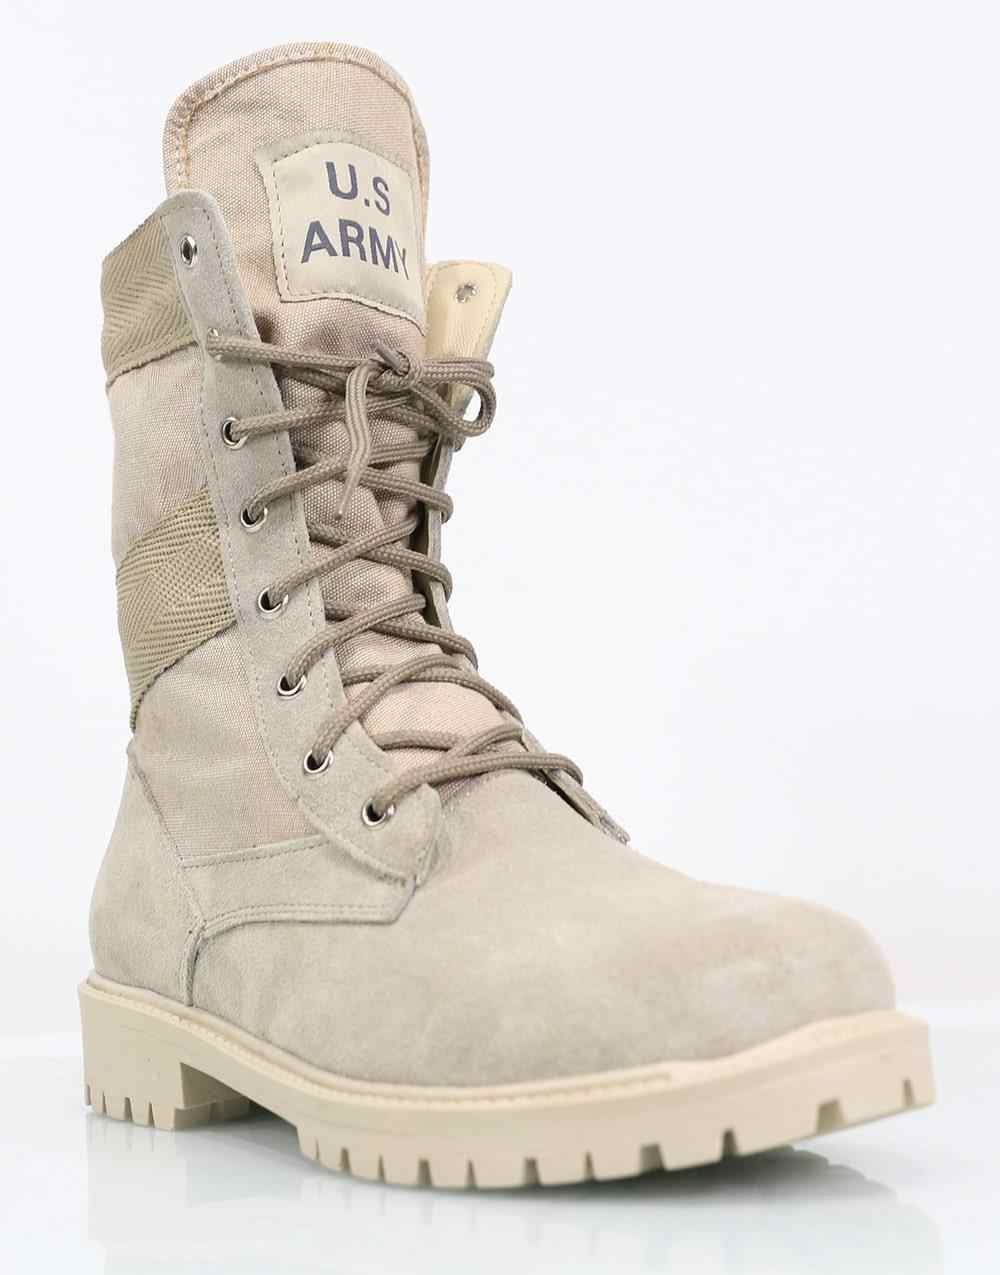 UNS Armee Stiefel Military Leder männer Stiefel